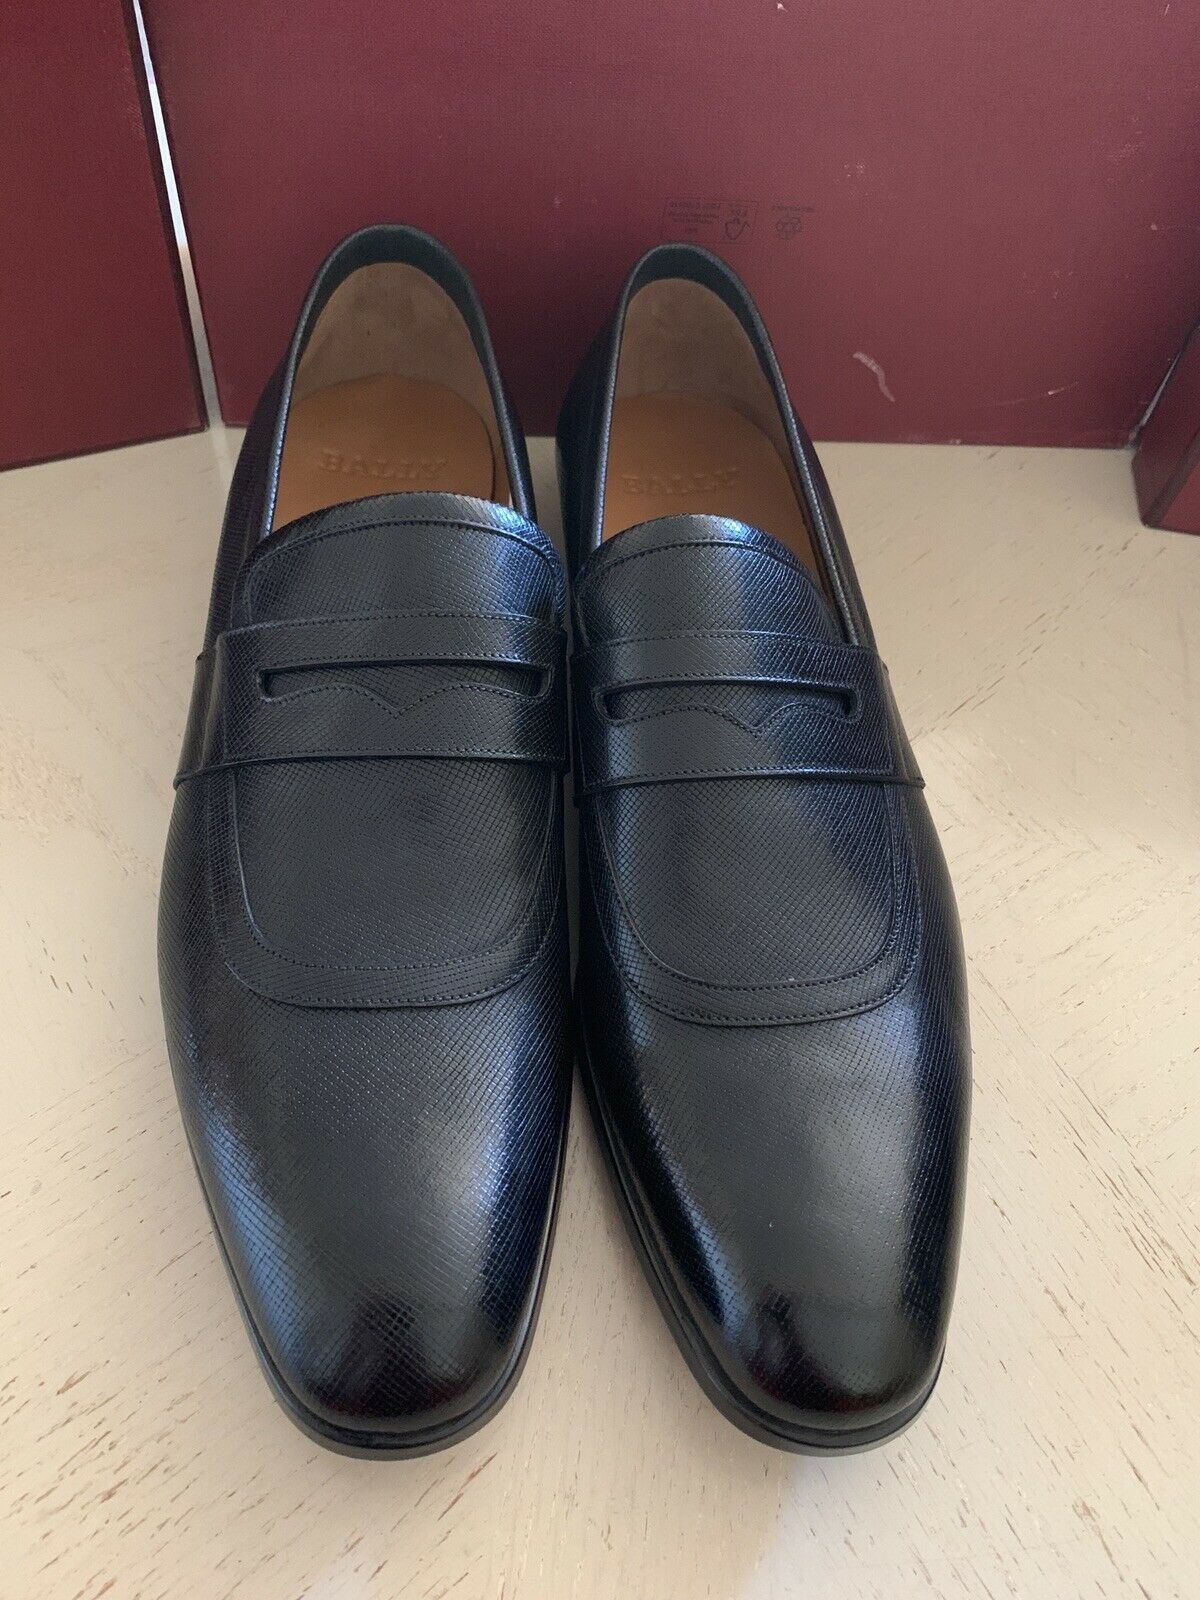 New $640 Bally Men Lahney Leather Loafers Shoes Black 12 US Switzerland